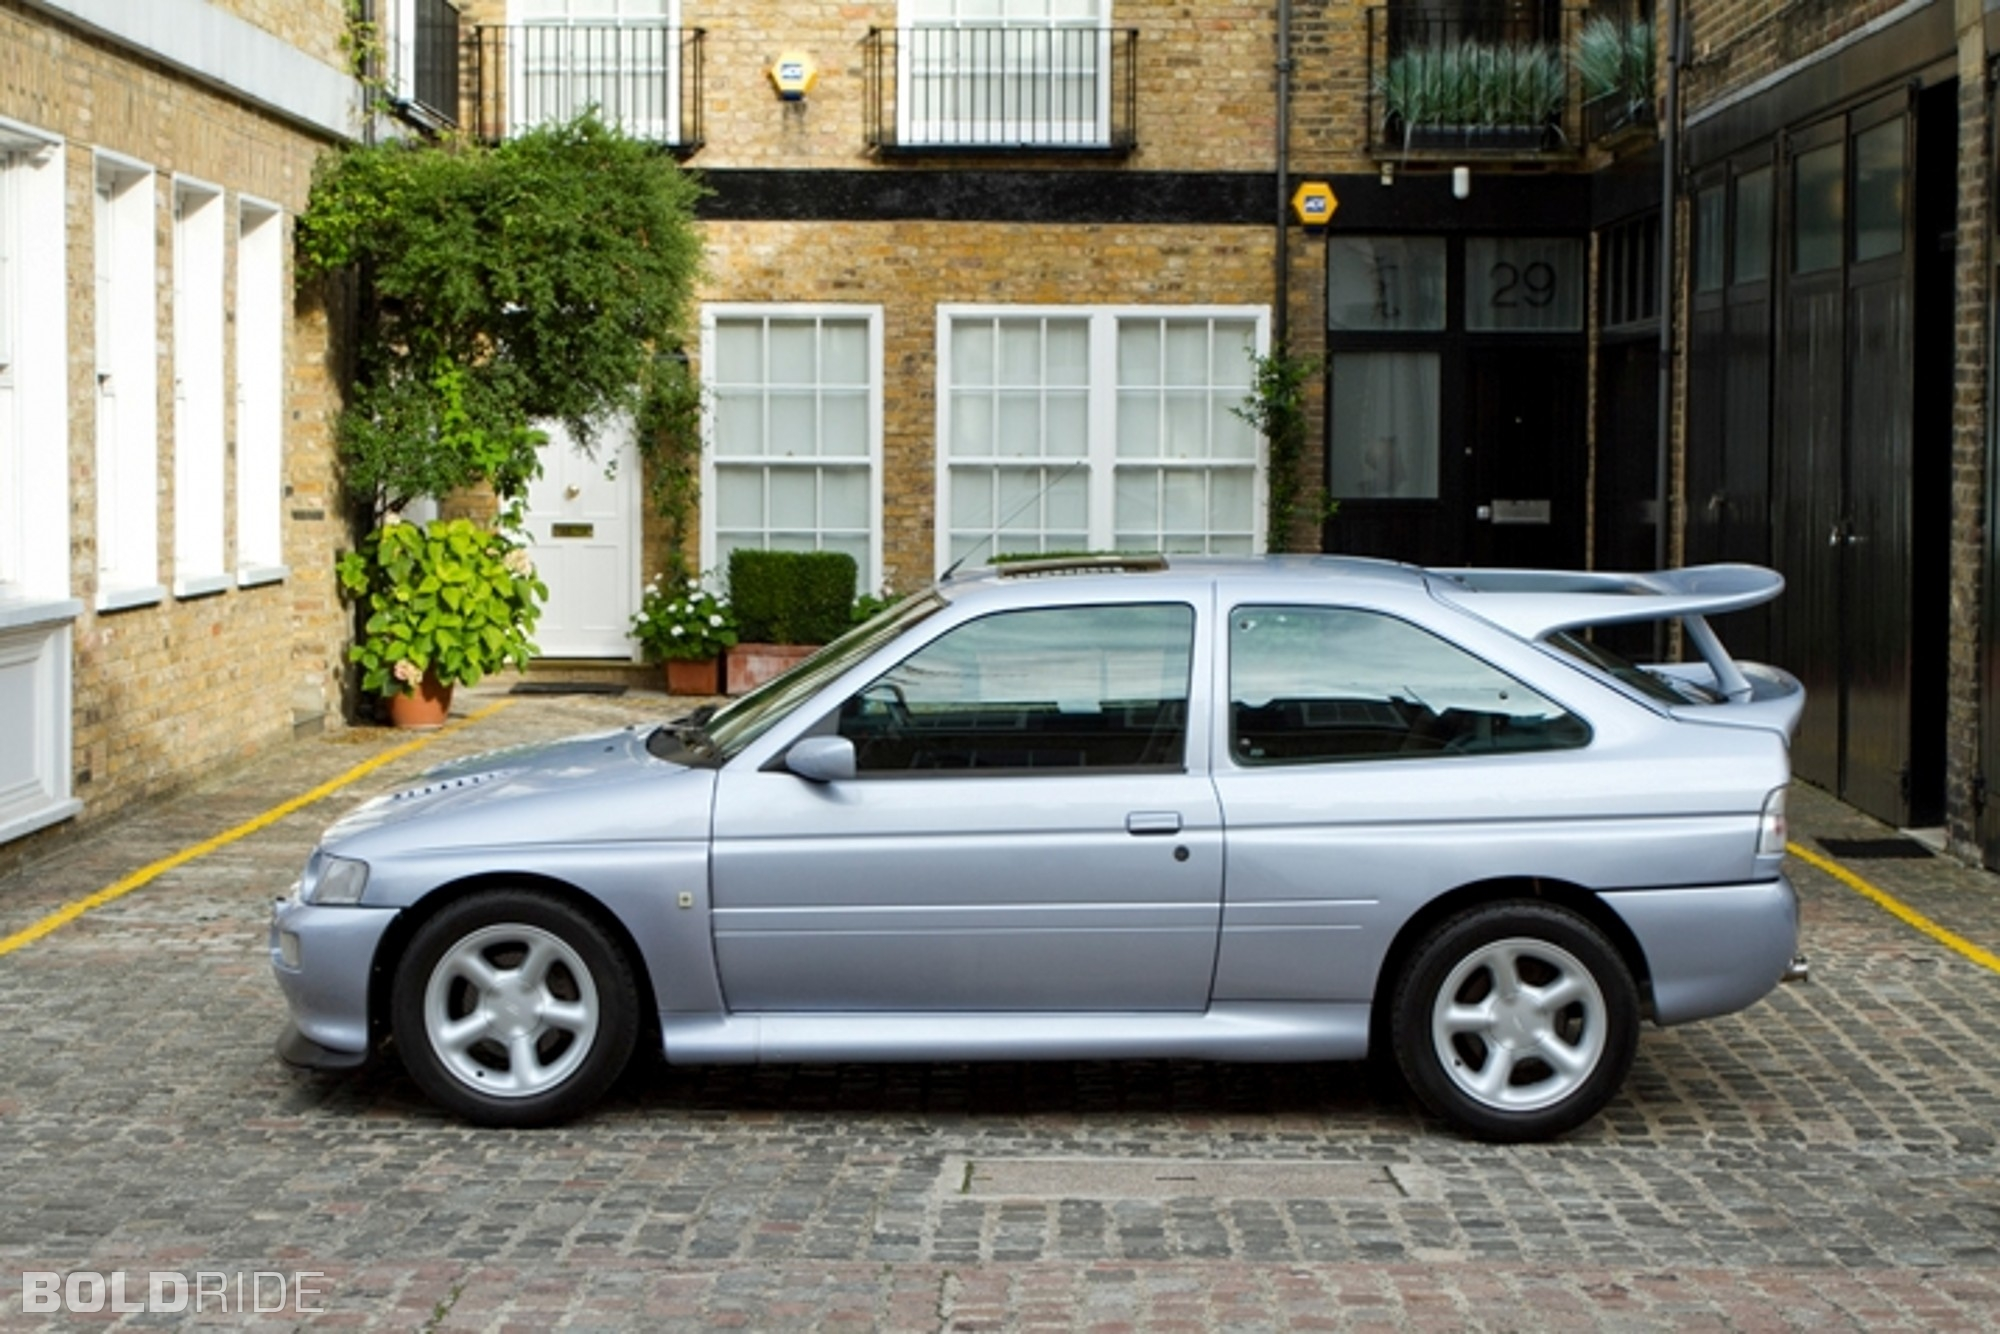 2000 ford escort image 4